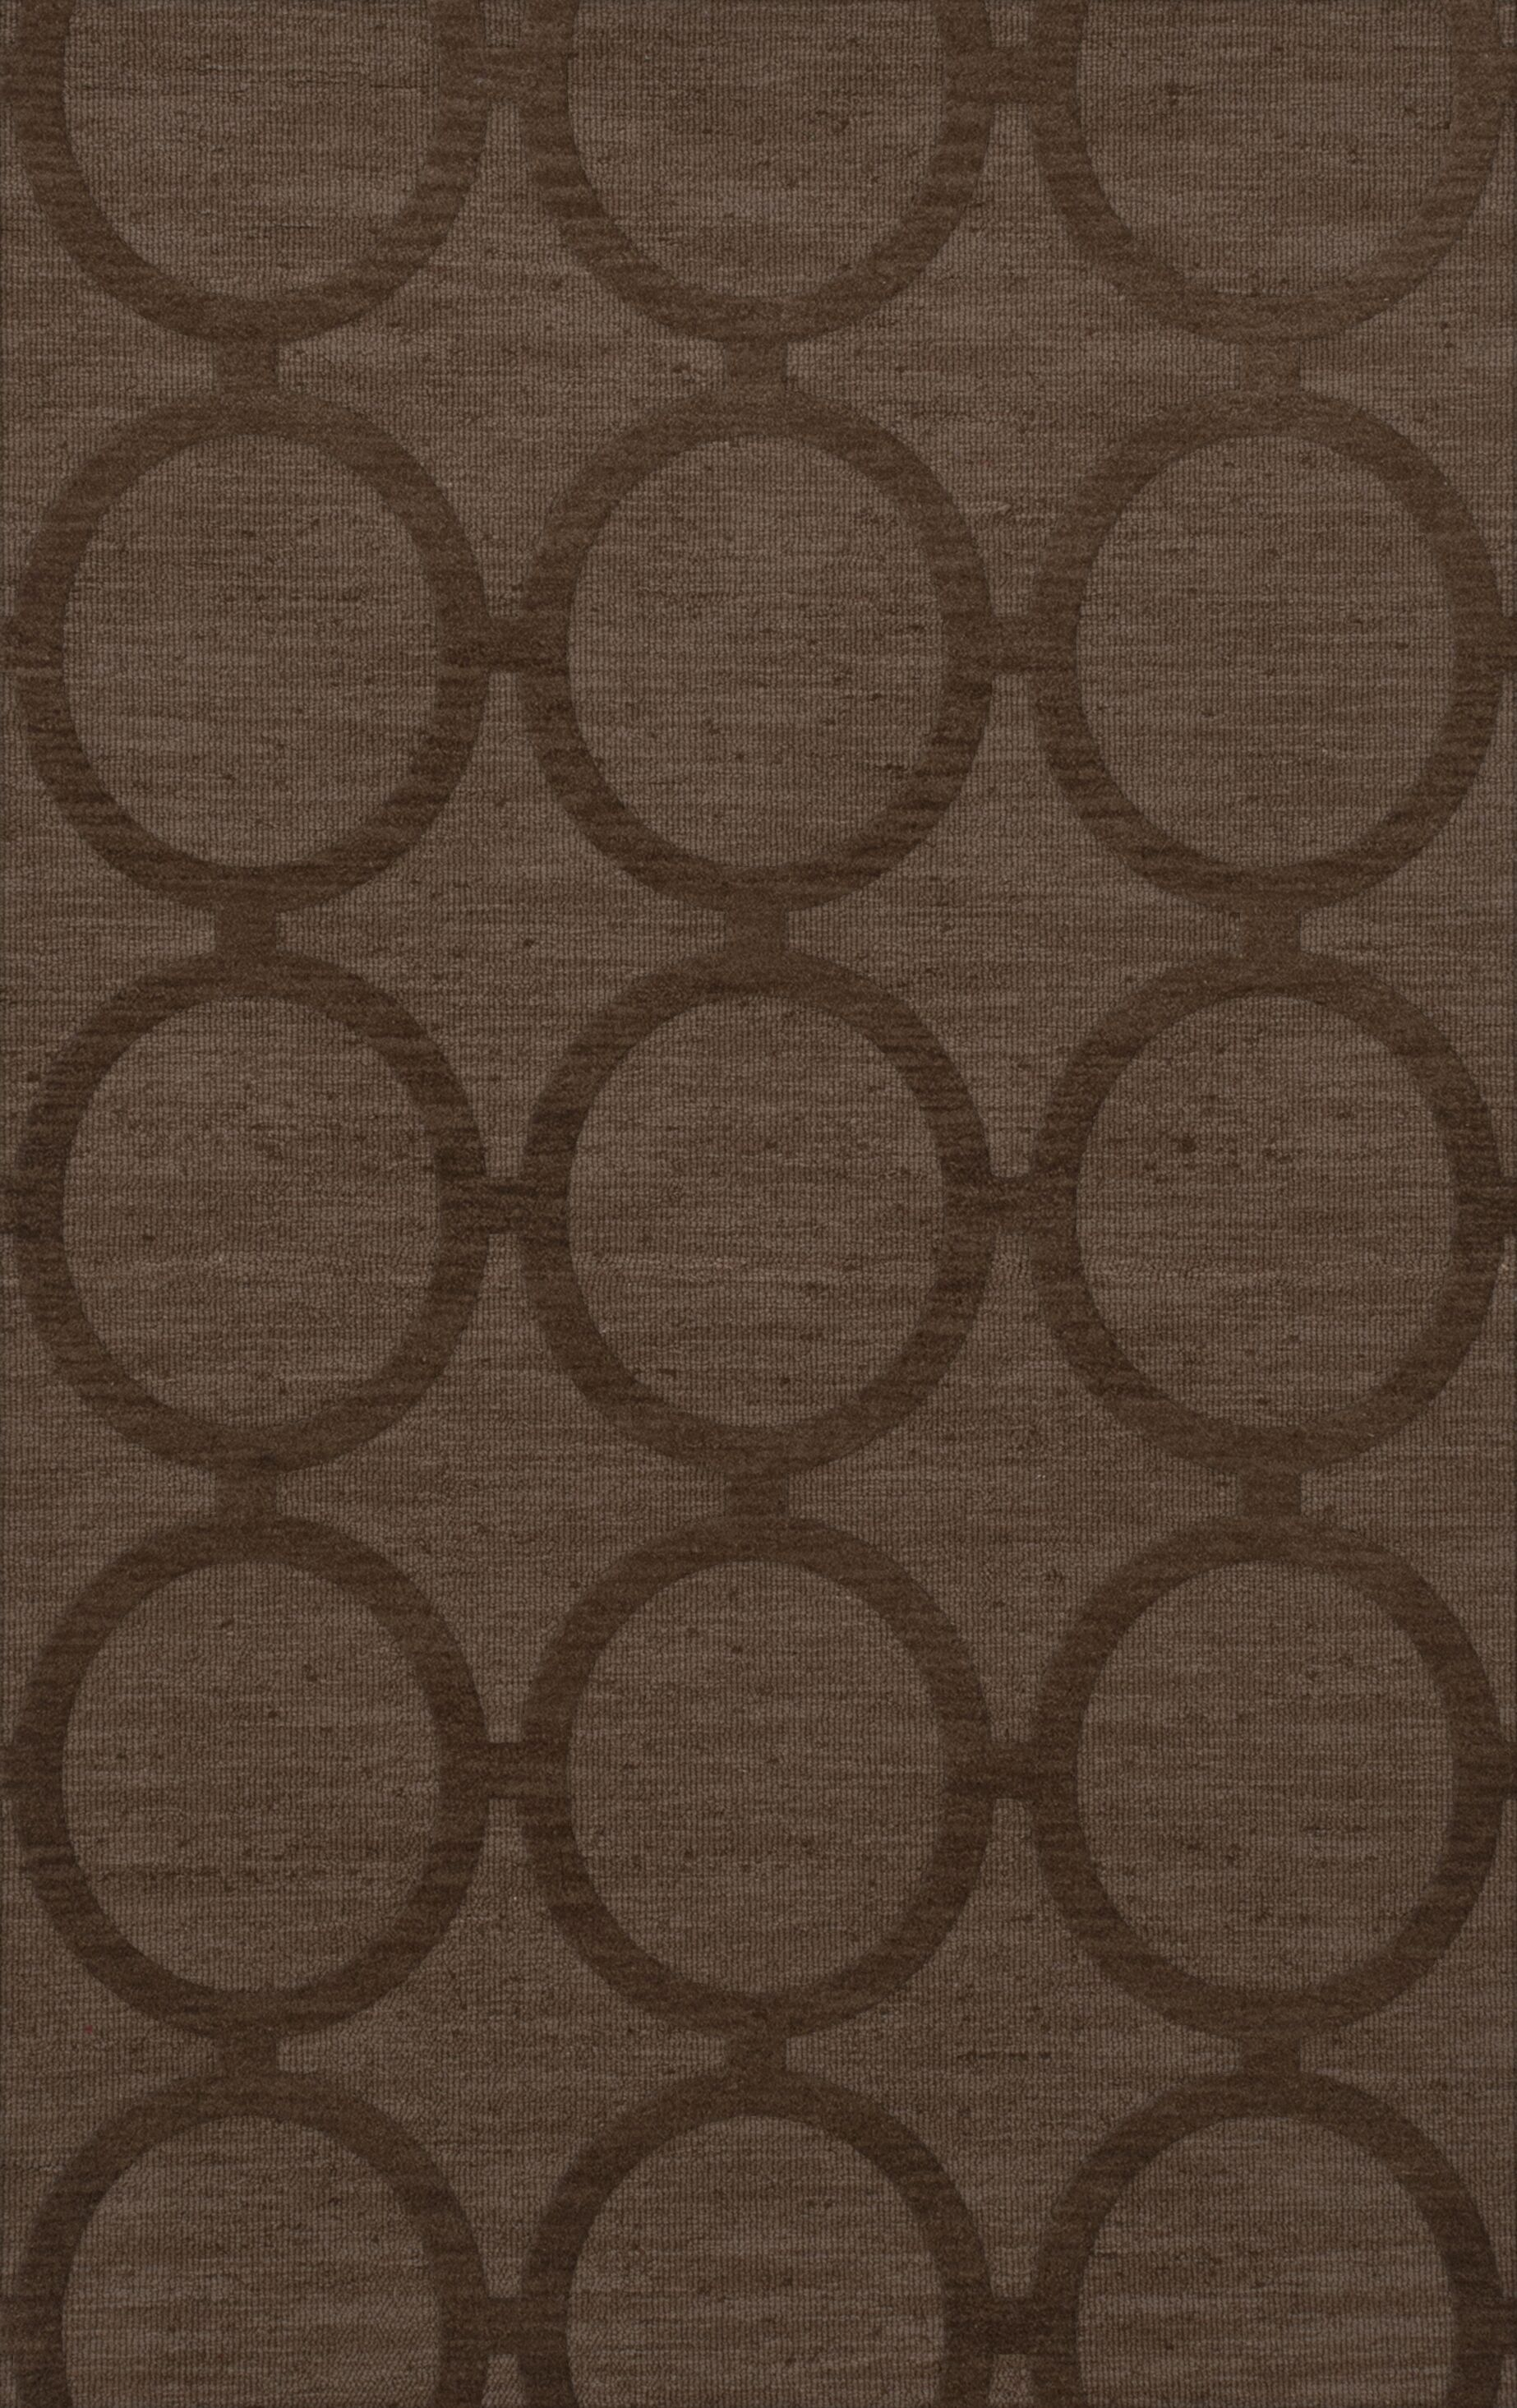 Dover Tufted Wool Mocha Area Rug Rug Size: Rectangle 3' x 5'